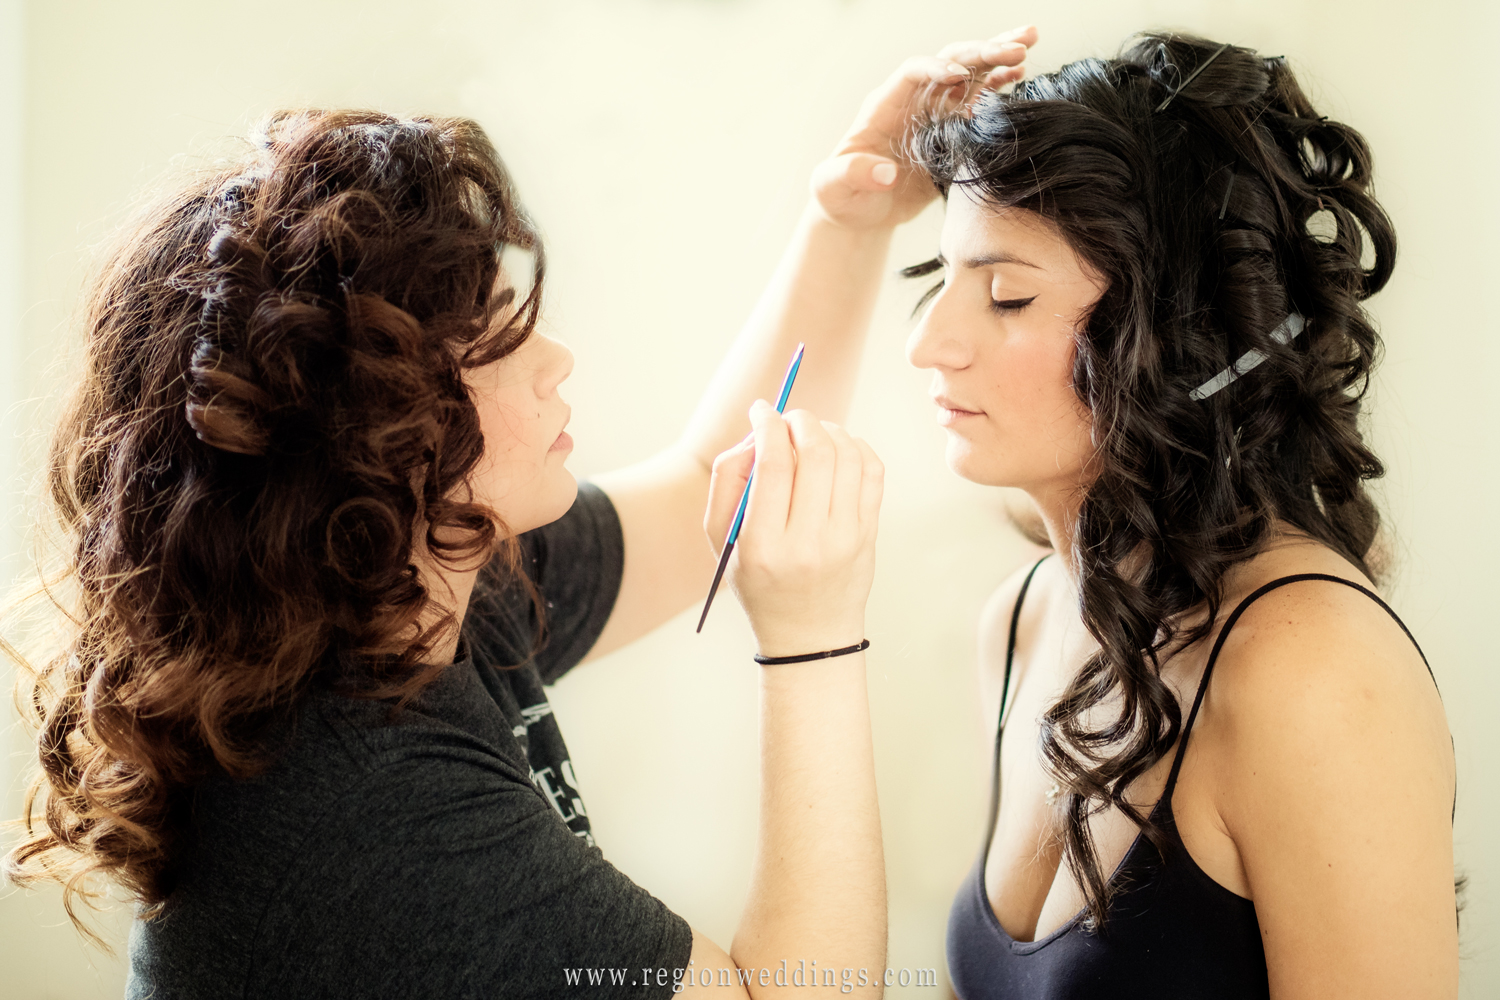 In the make up chair on wedding day.